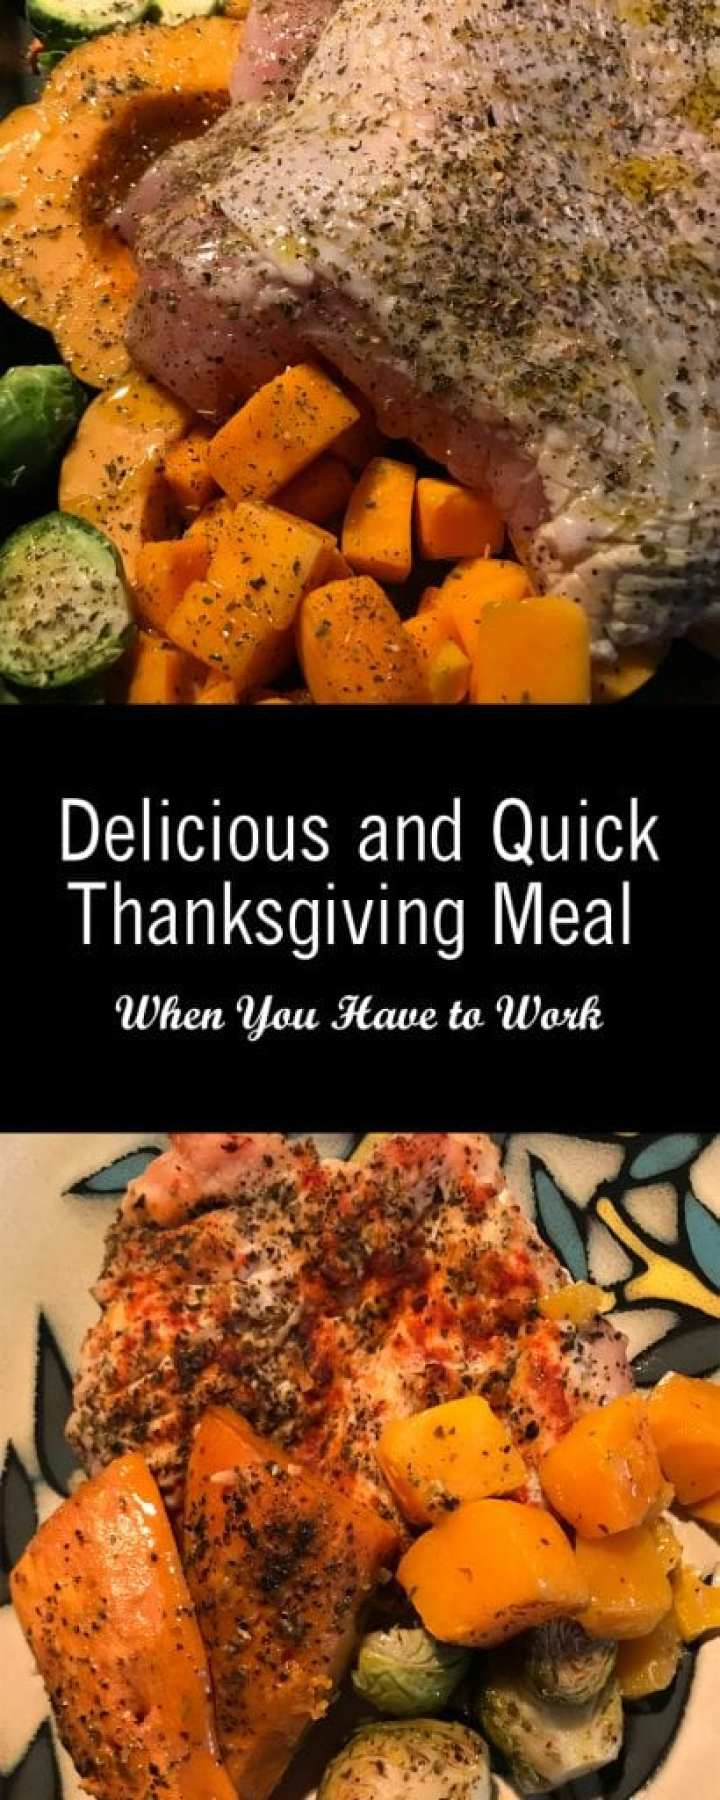 Delicious and Quick Thanksgiving Meal When You Have to Work